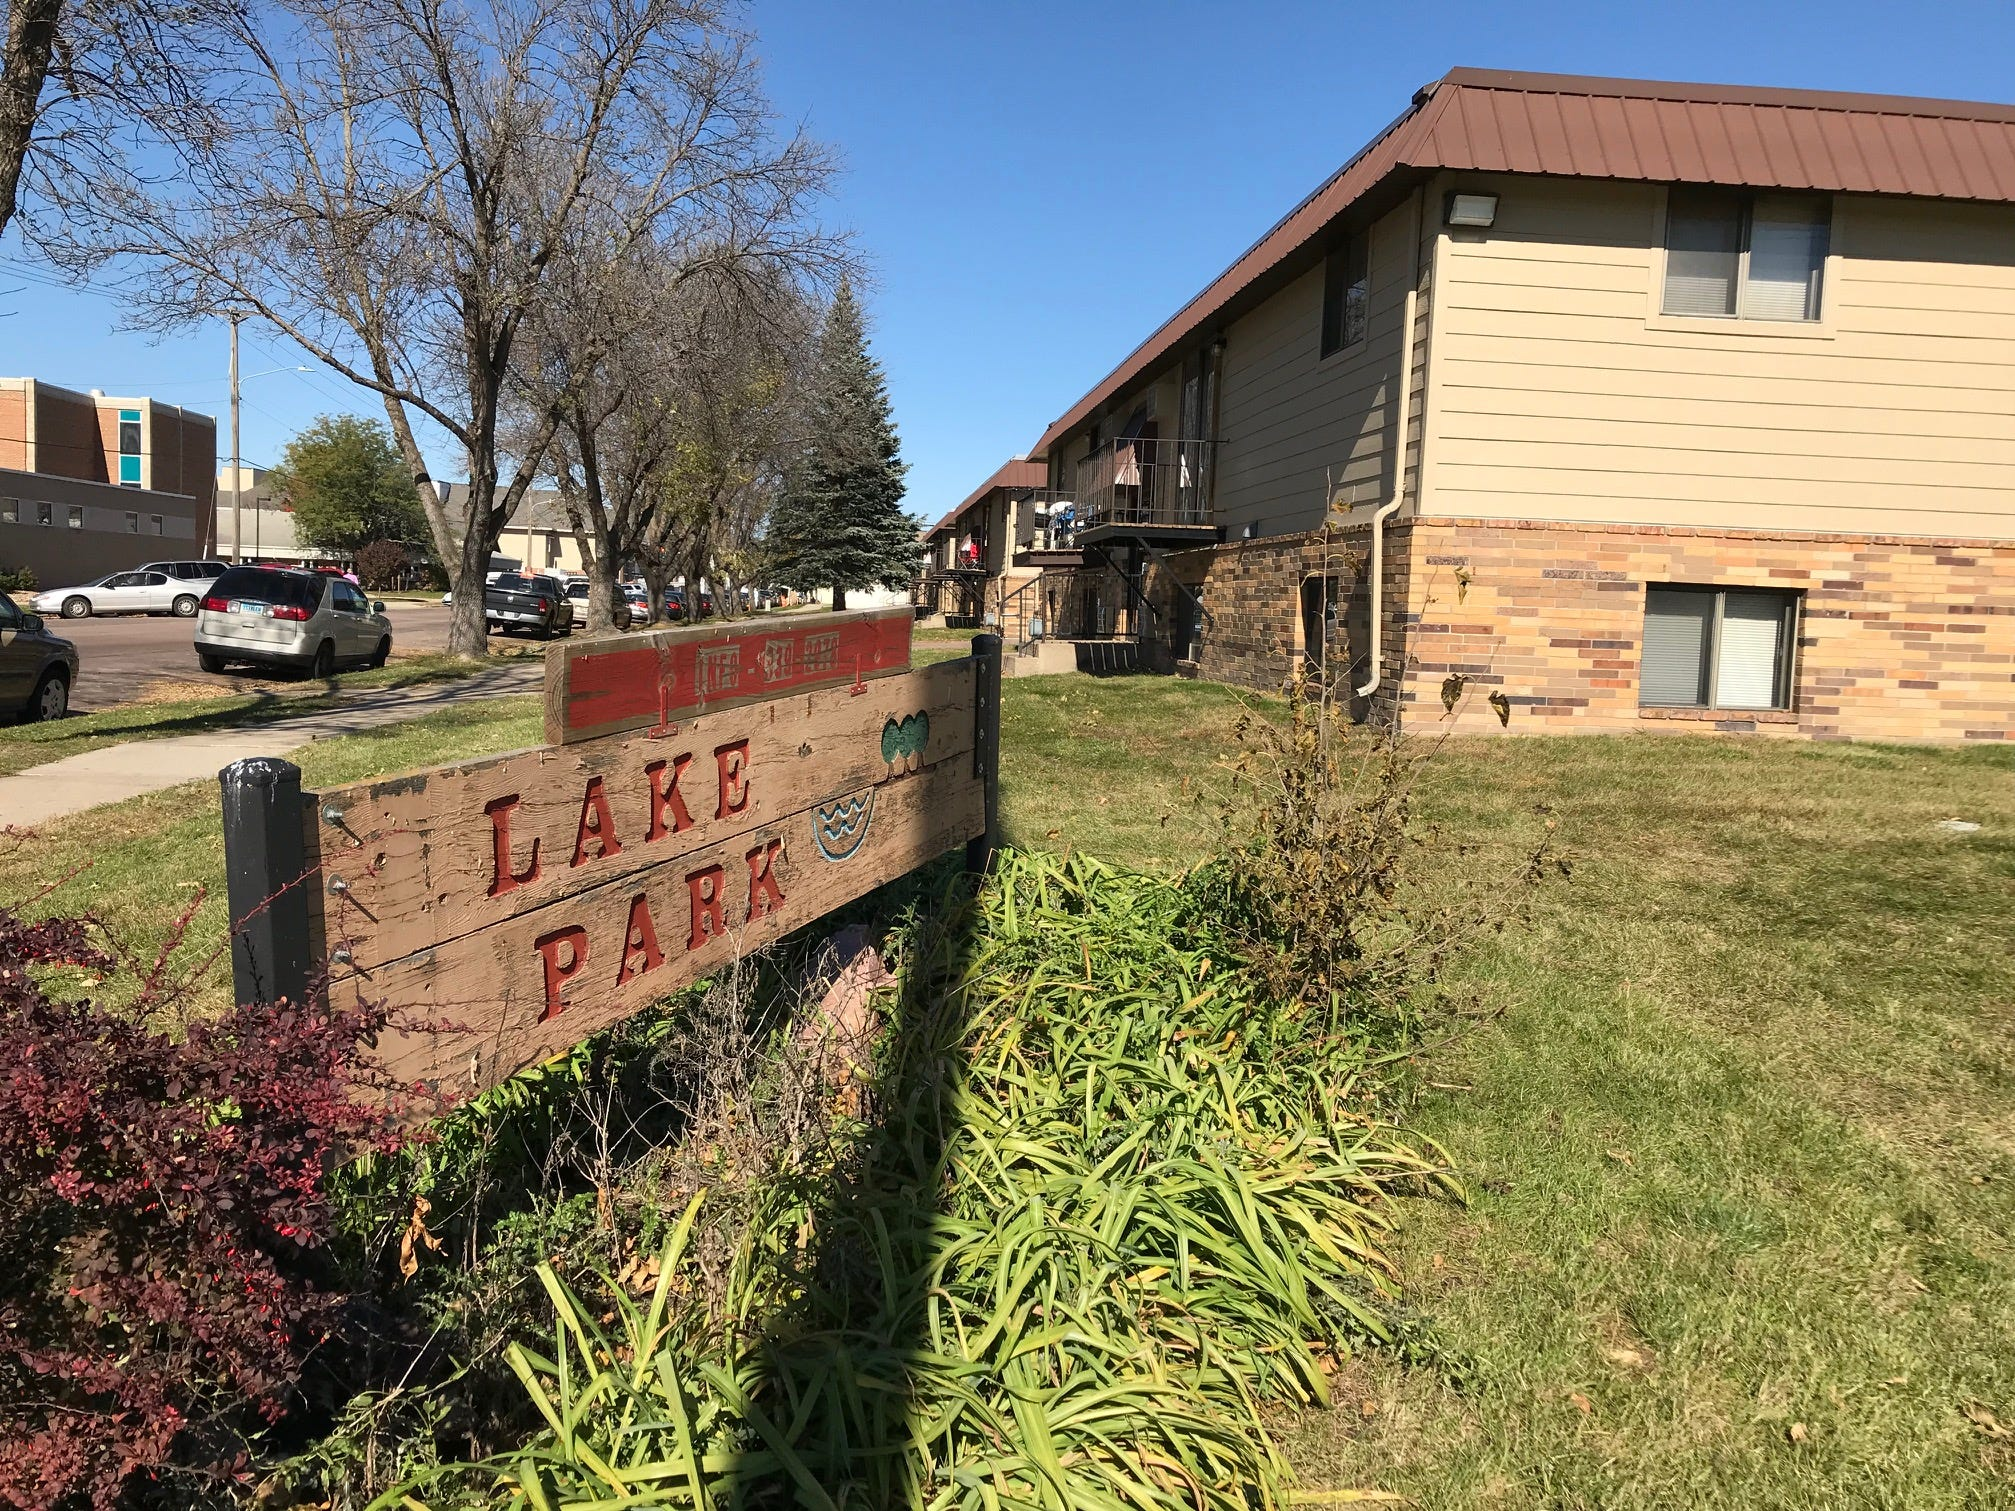 The Lake Park apartments, located in the 1000 block of North Covell Avenue in Sioux Falls, acquired by Miami-based Tzadik Management.